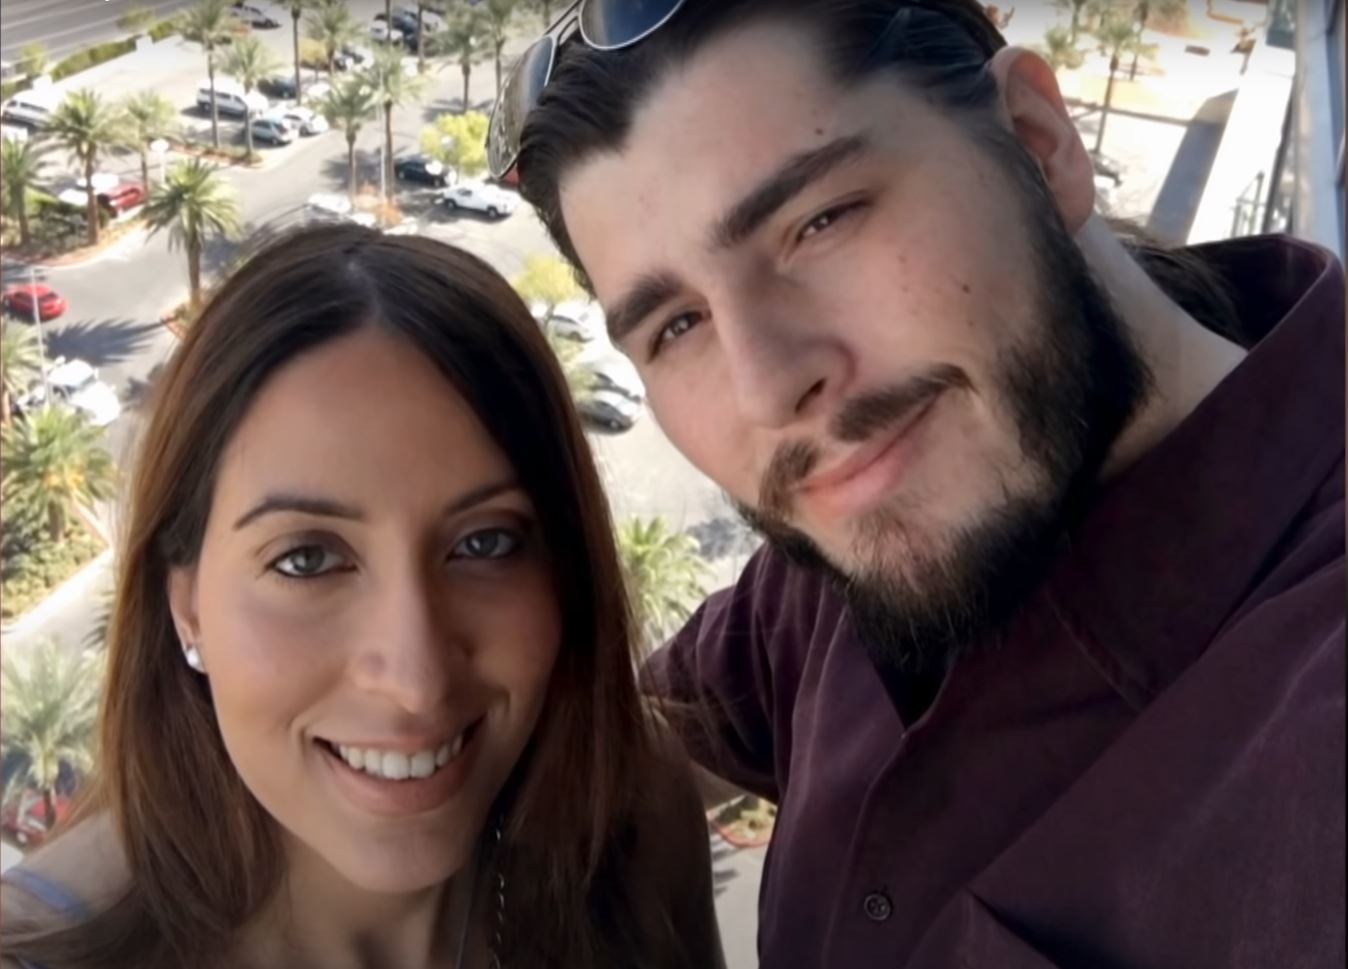 Andrew and Amira from 90 Day Fiancé